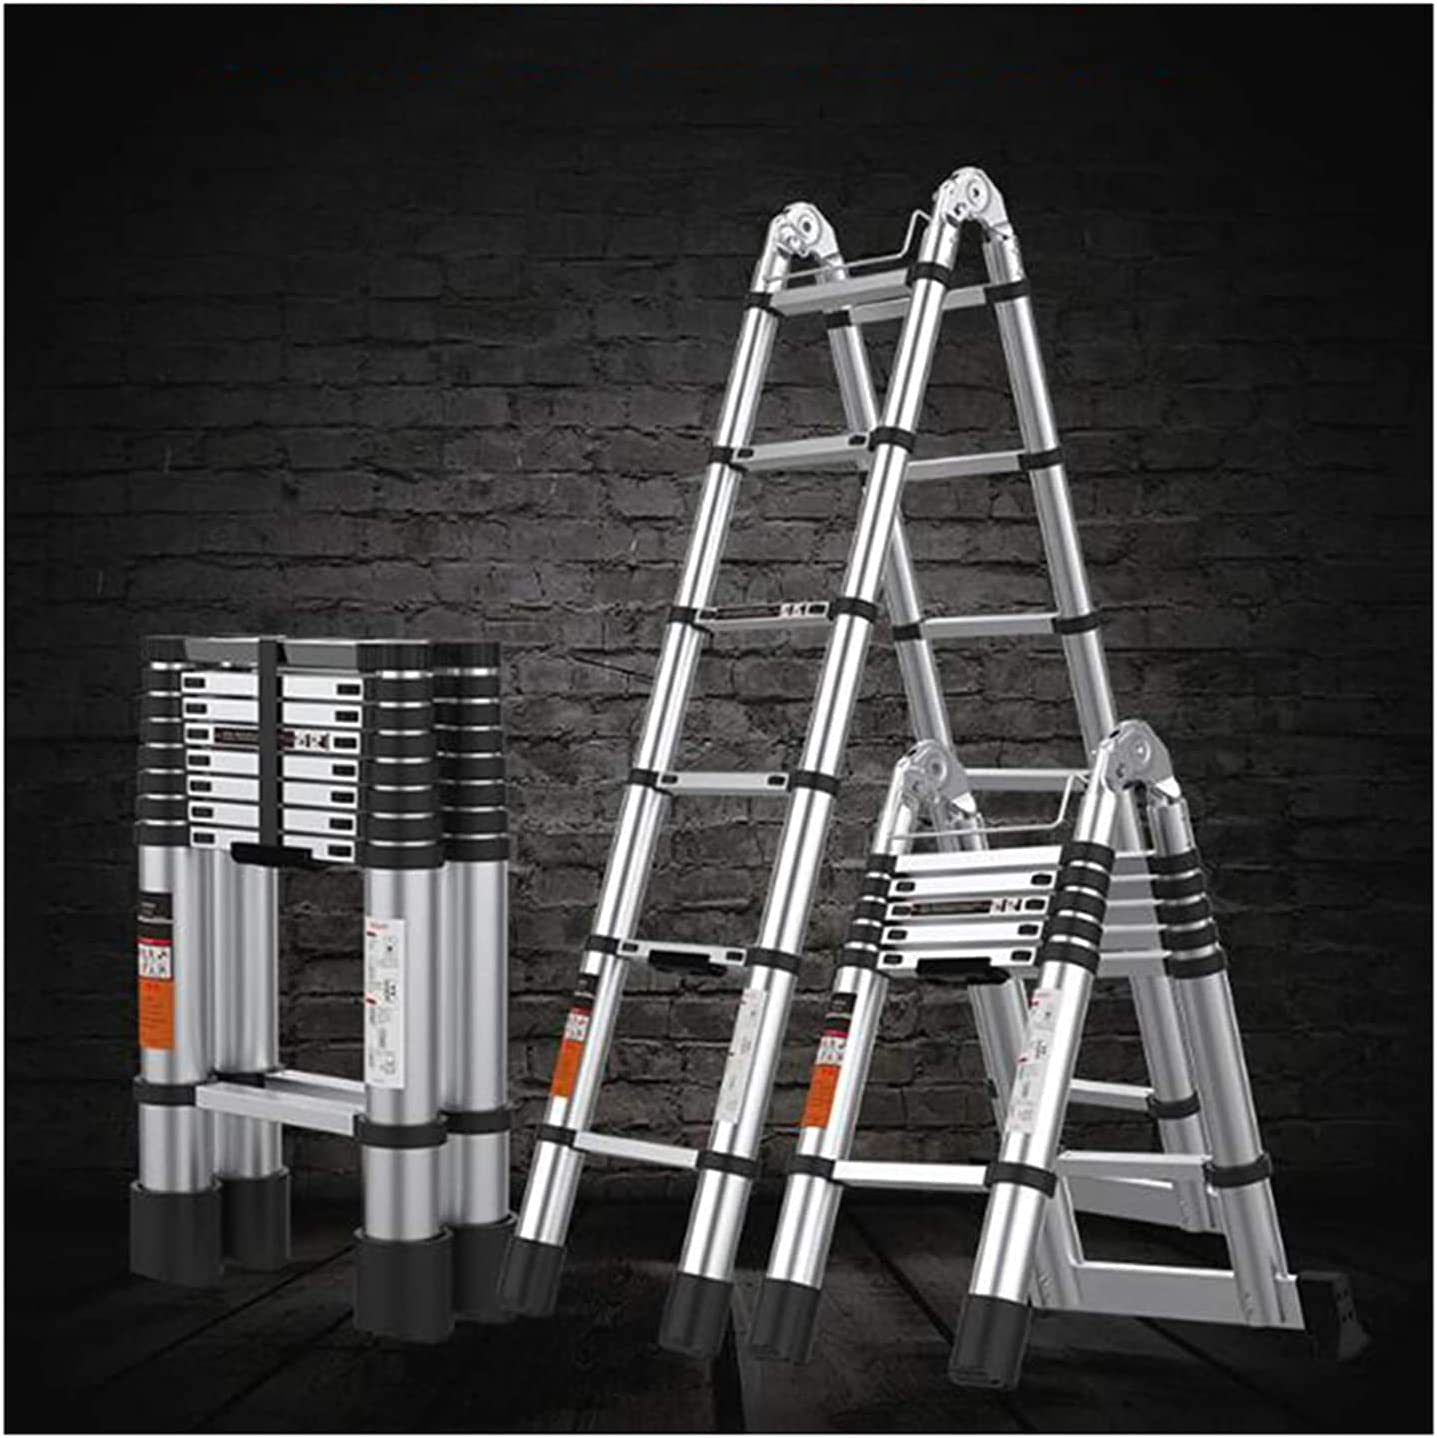 HBSC Portable Telescopic Ladder with Ma Bombing free shipping and Lock Non-Slip Max 47% OFF Safety